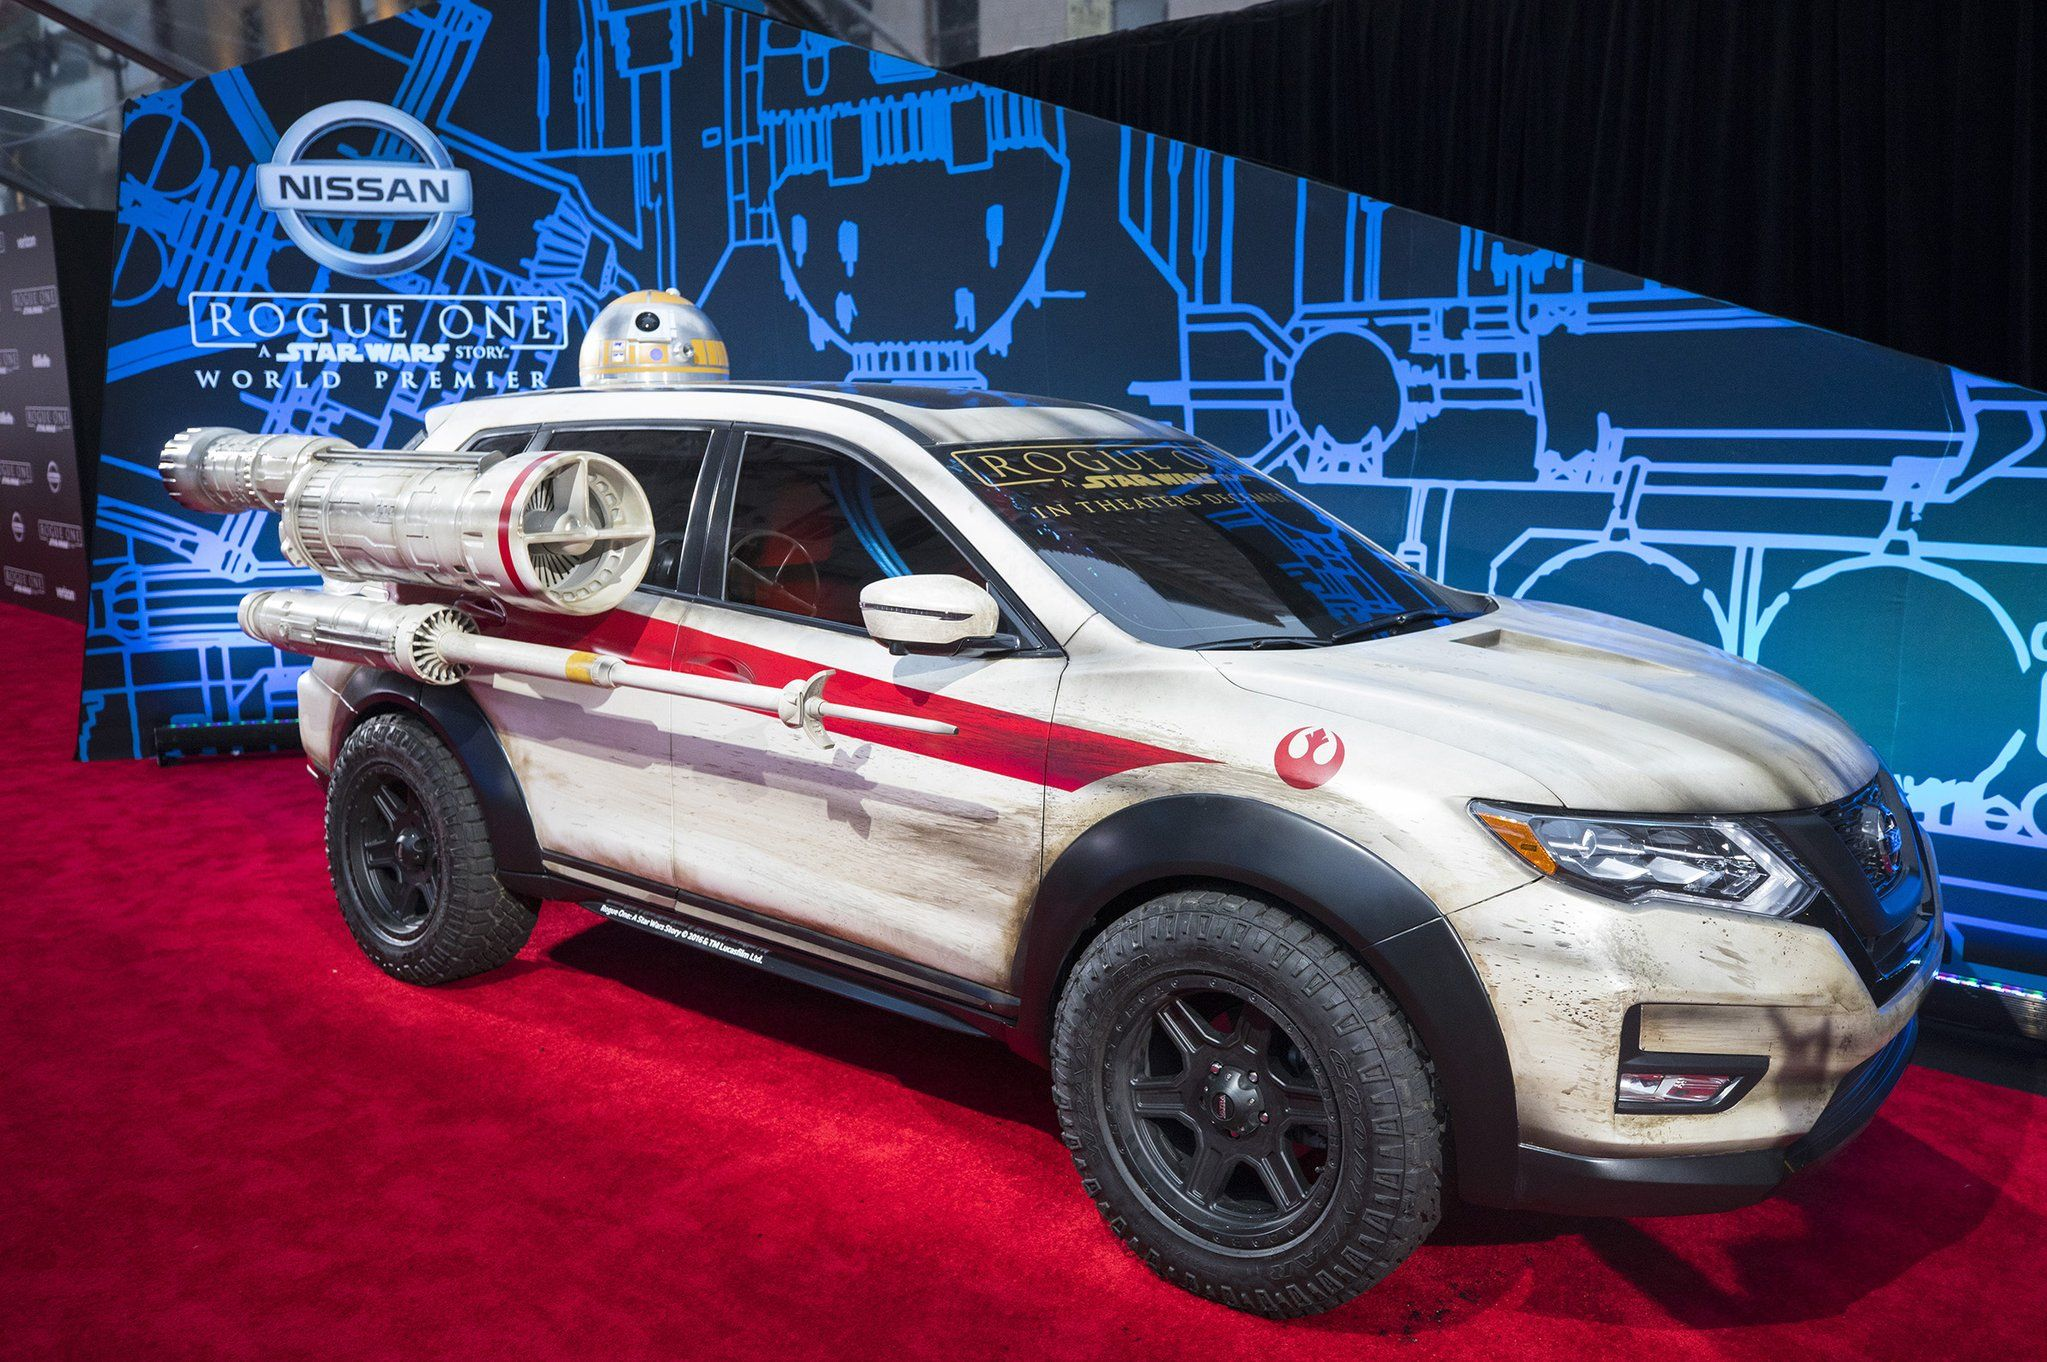 Rogue One A Star Wars Story Opens In Theaters Today This X Wing Inspired Nissan Rogue Turned Heads At The World Premiere Last Weekend Starwars Rogueone Go